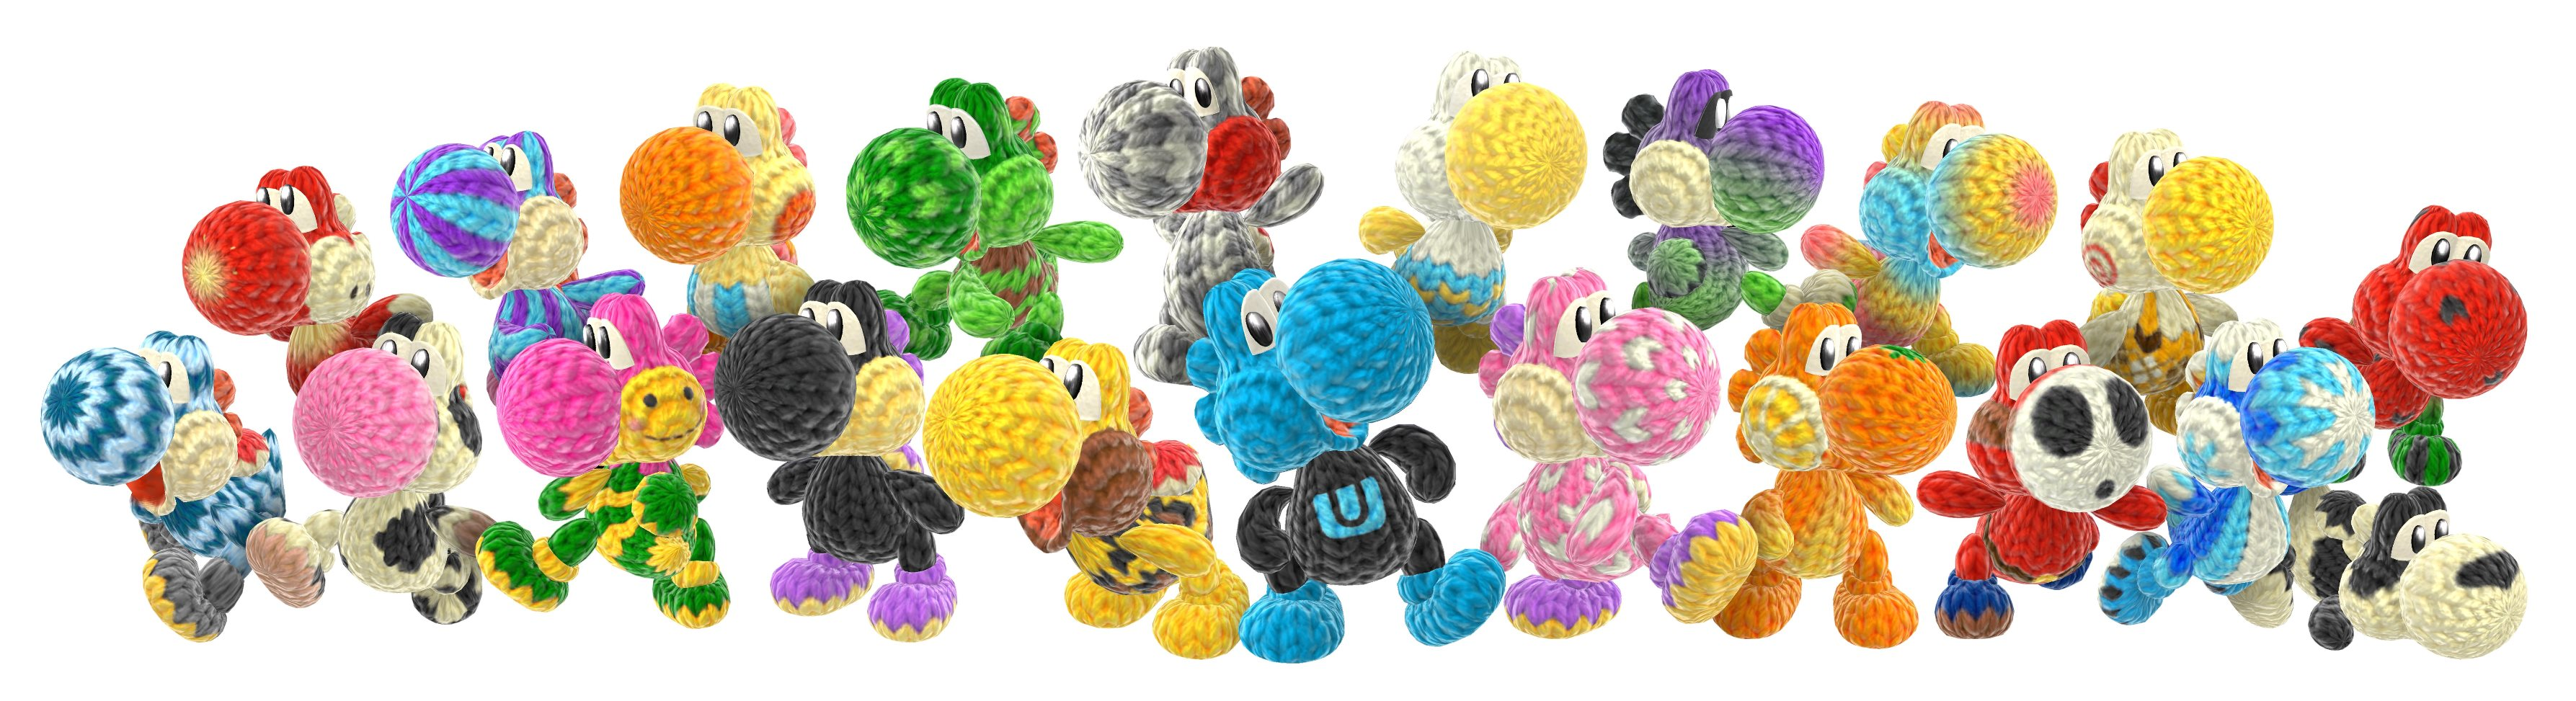 Tons of New Yoshi's Woolly World Art Released